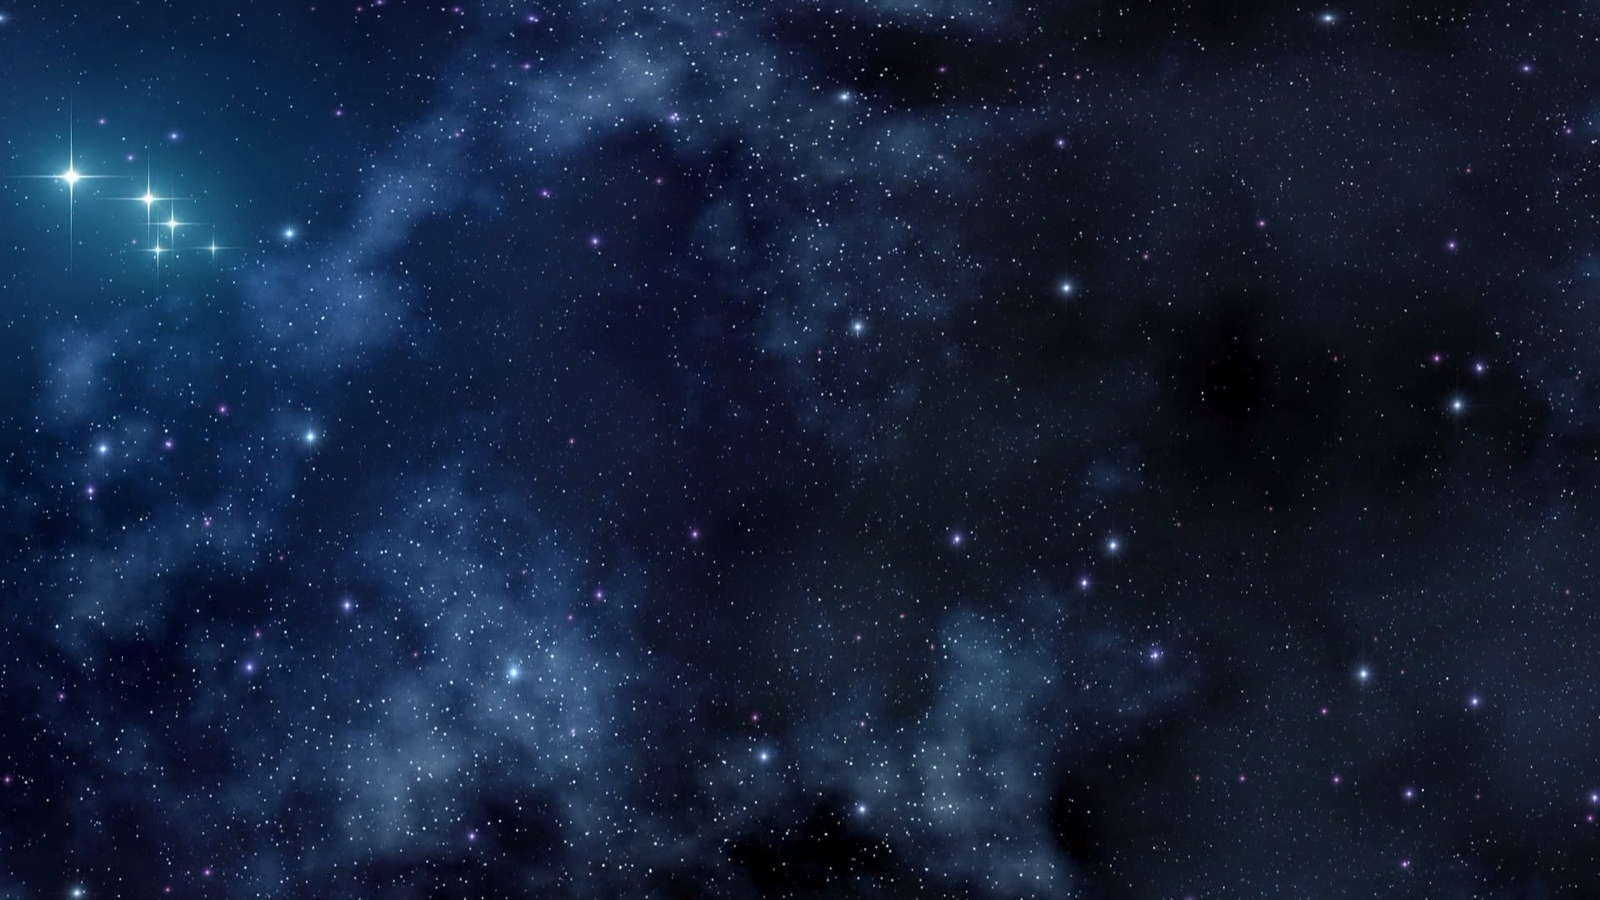 Dark Blue Space Wallpaper 1600x900